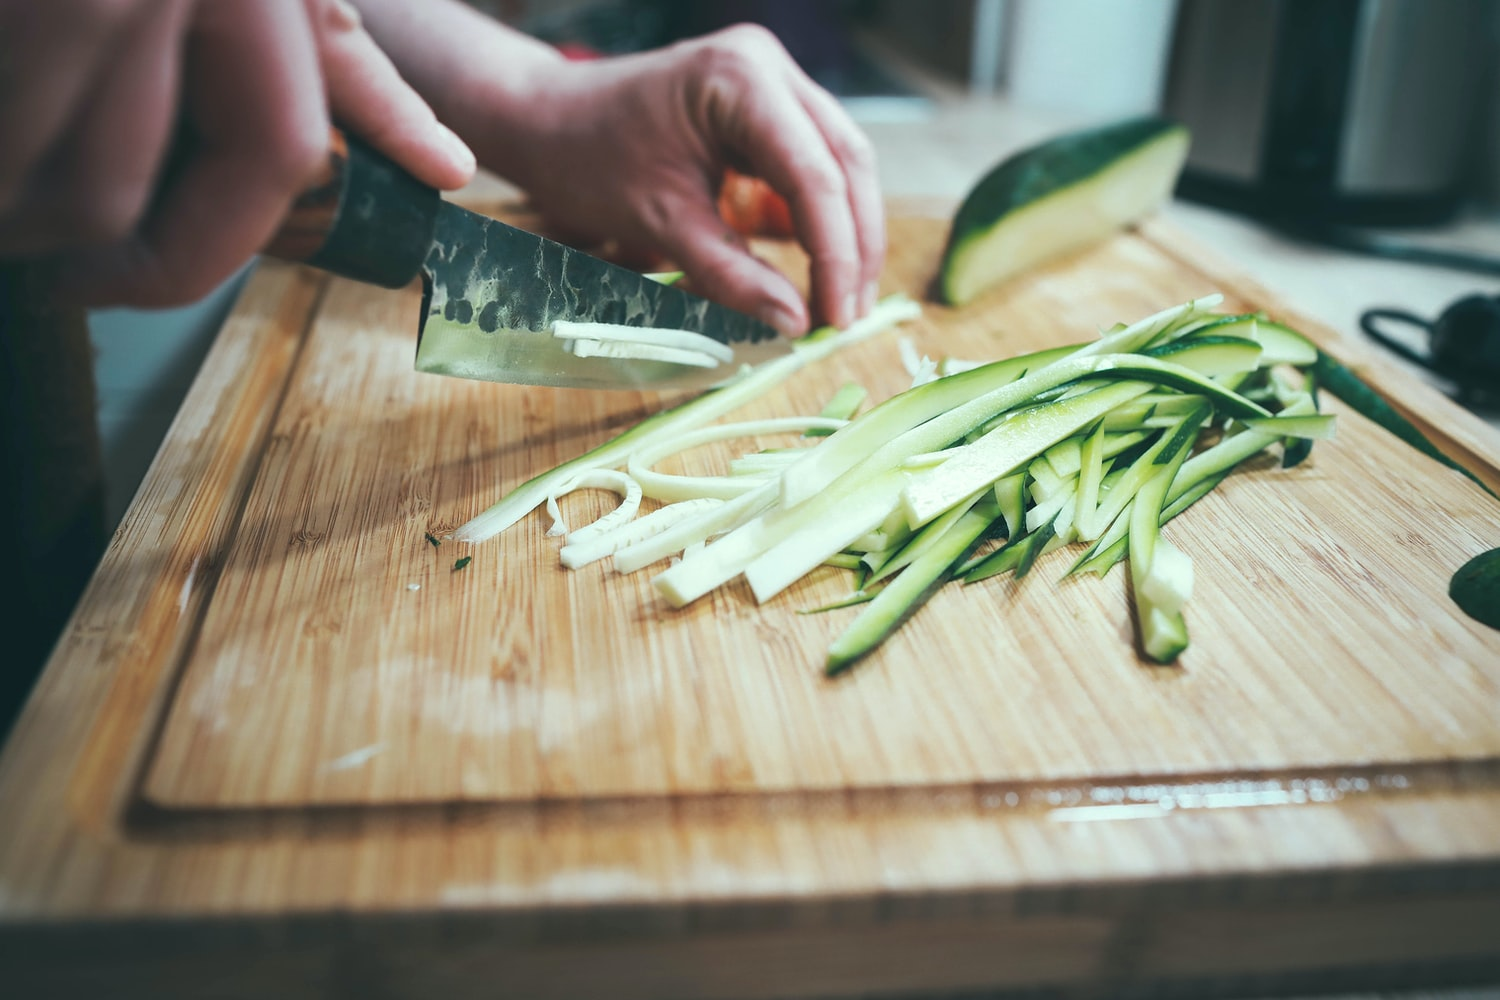 A person is slicing a cucumber